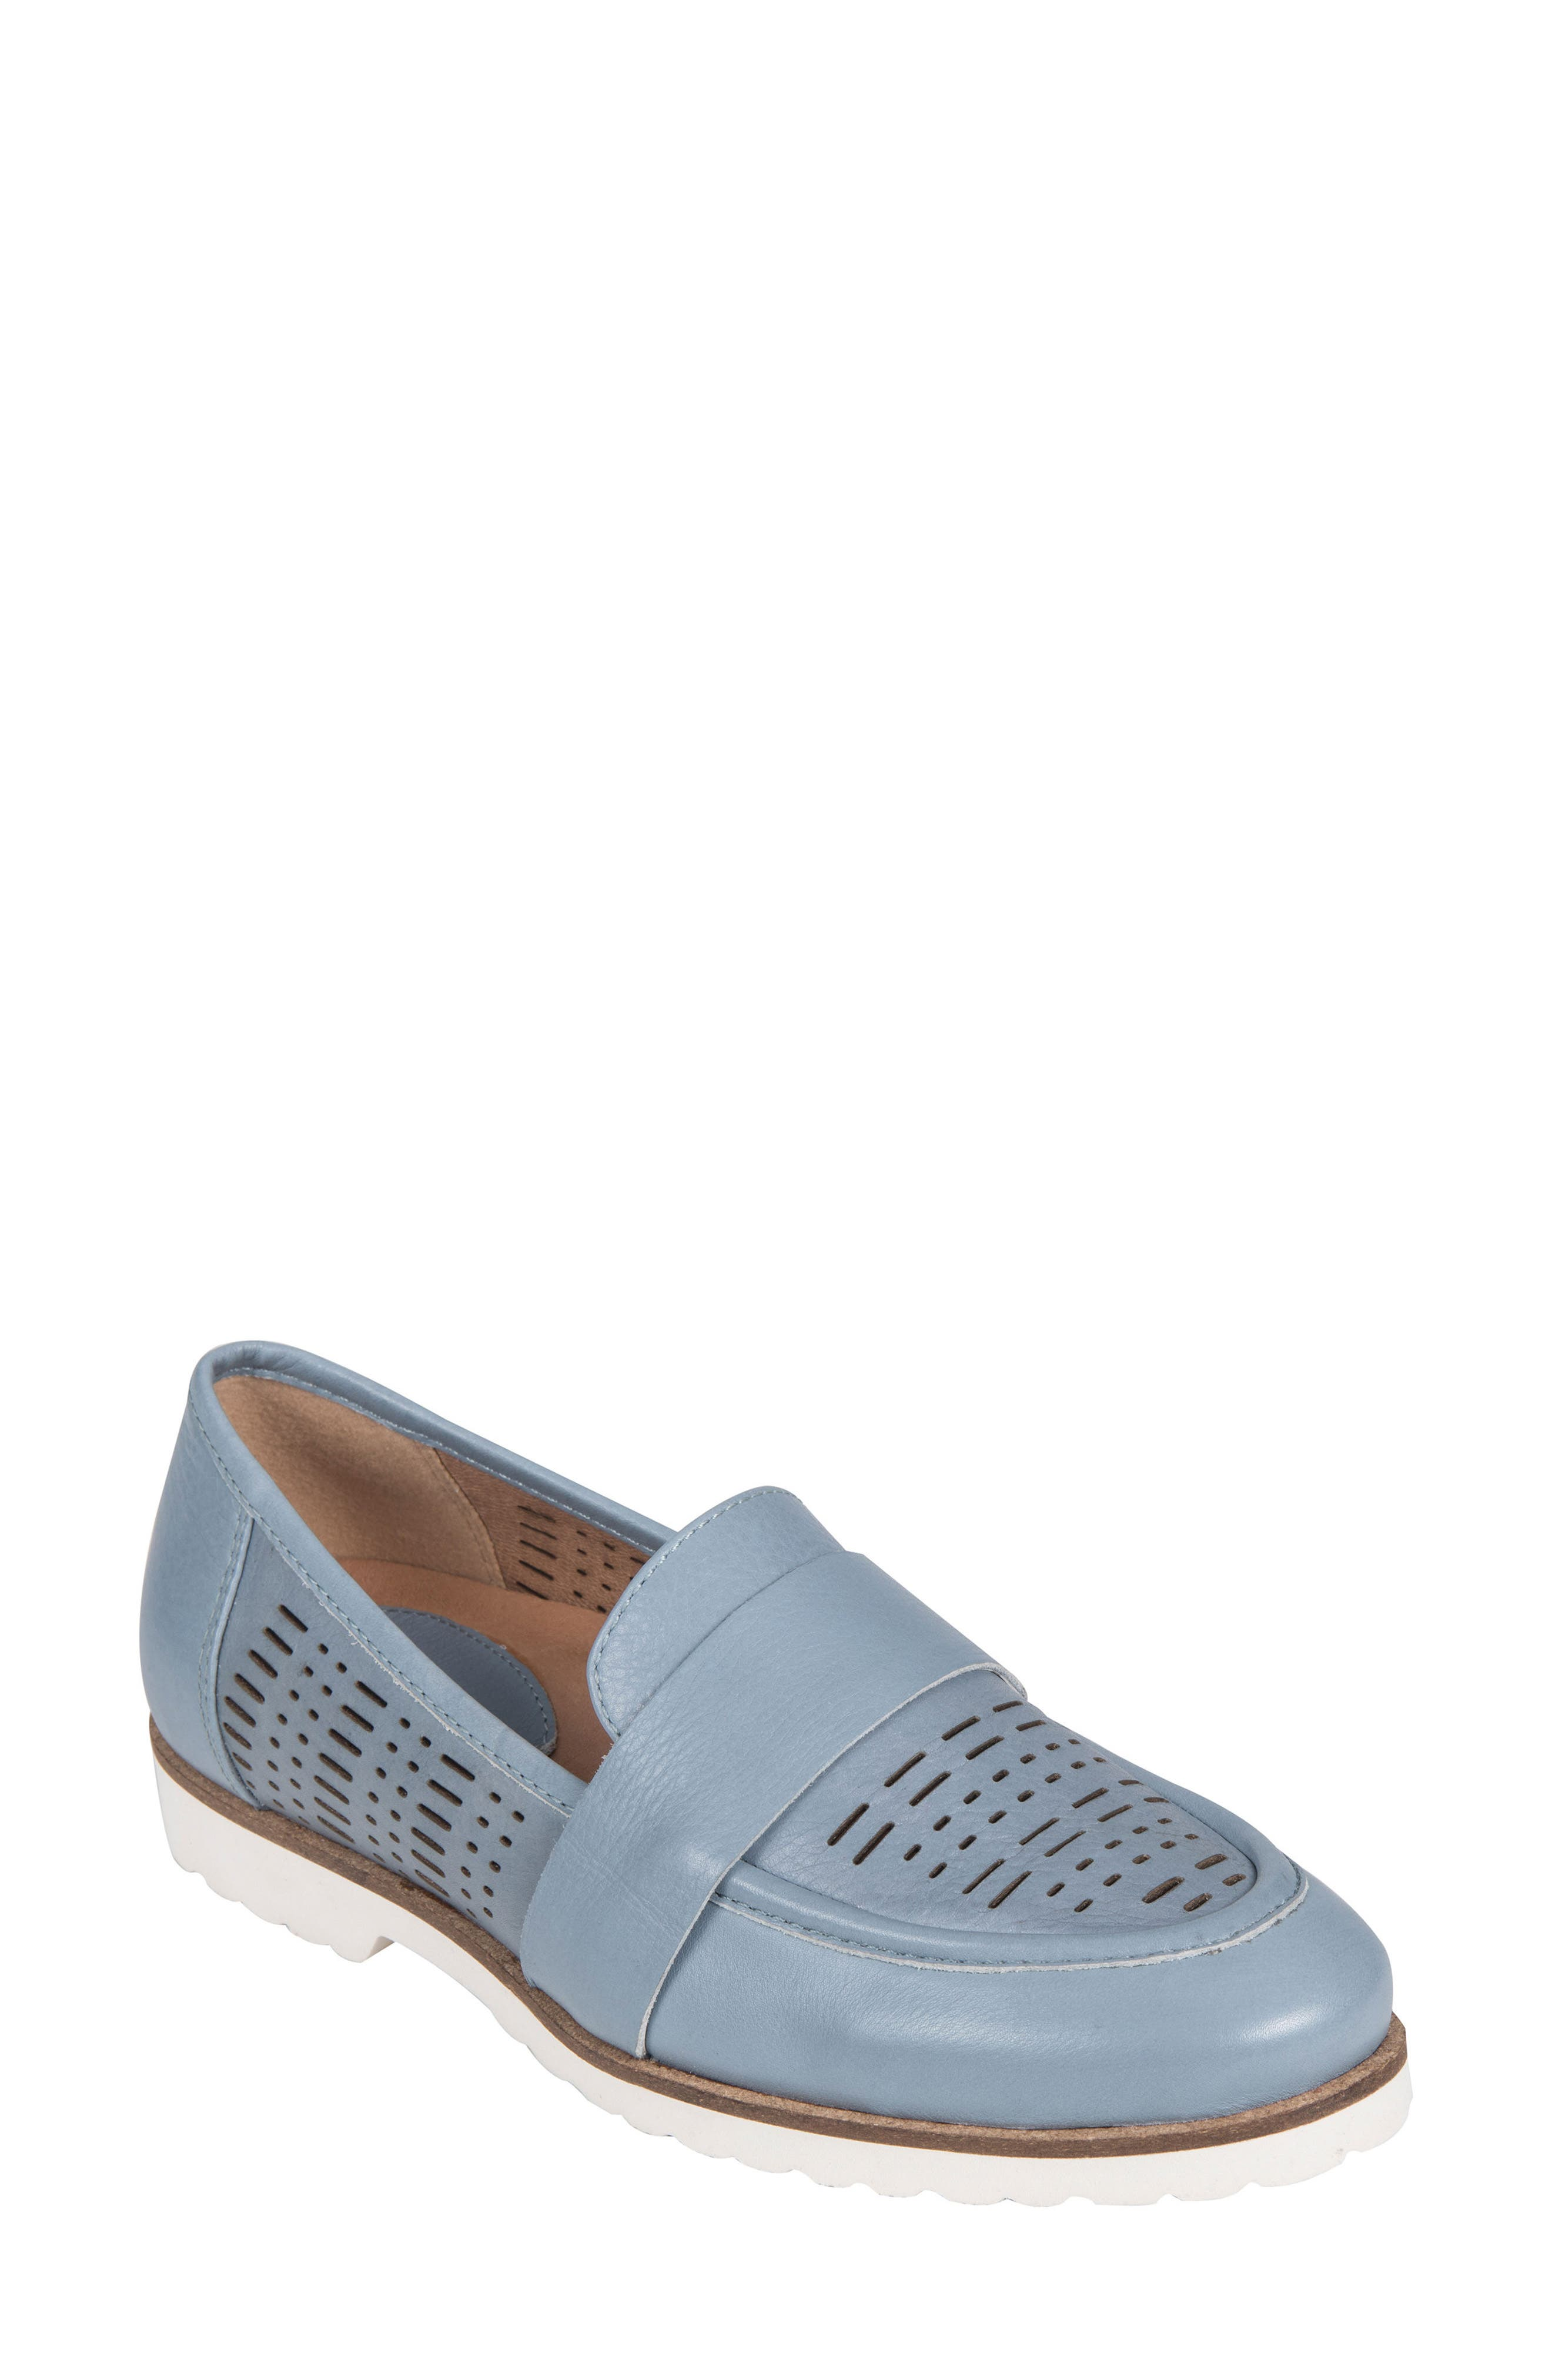 Masio Loafer,                         Main,                         color, Blue Leather